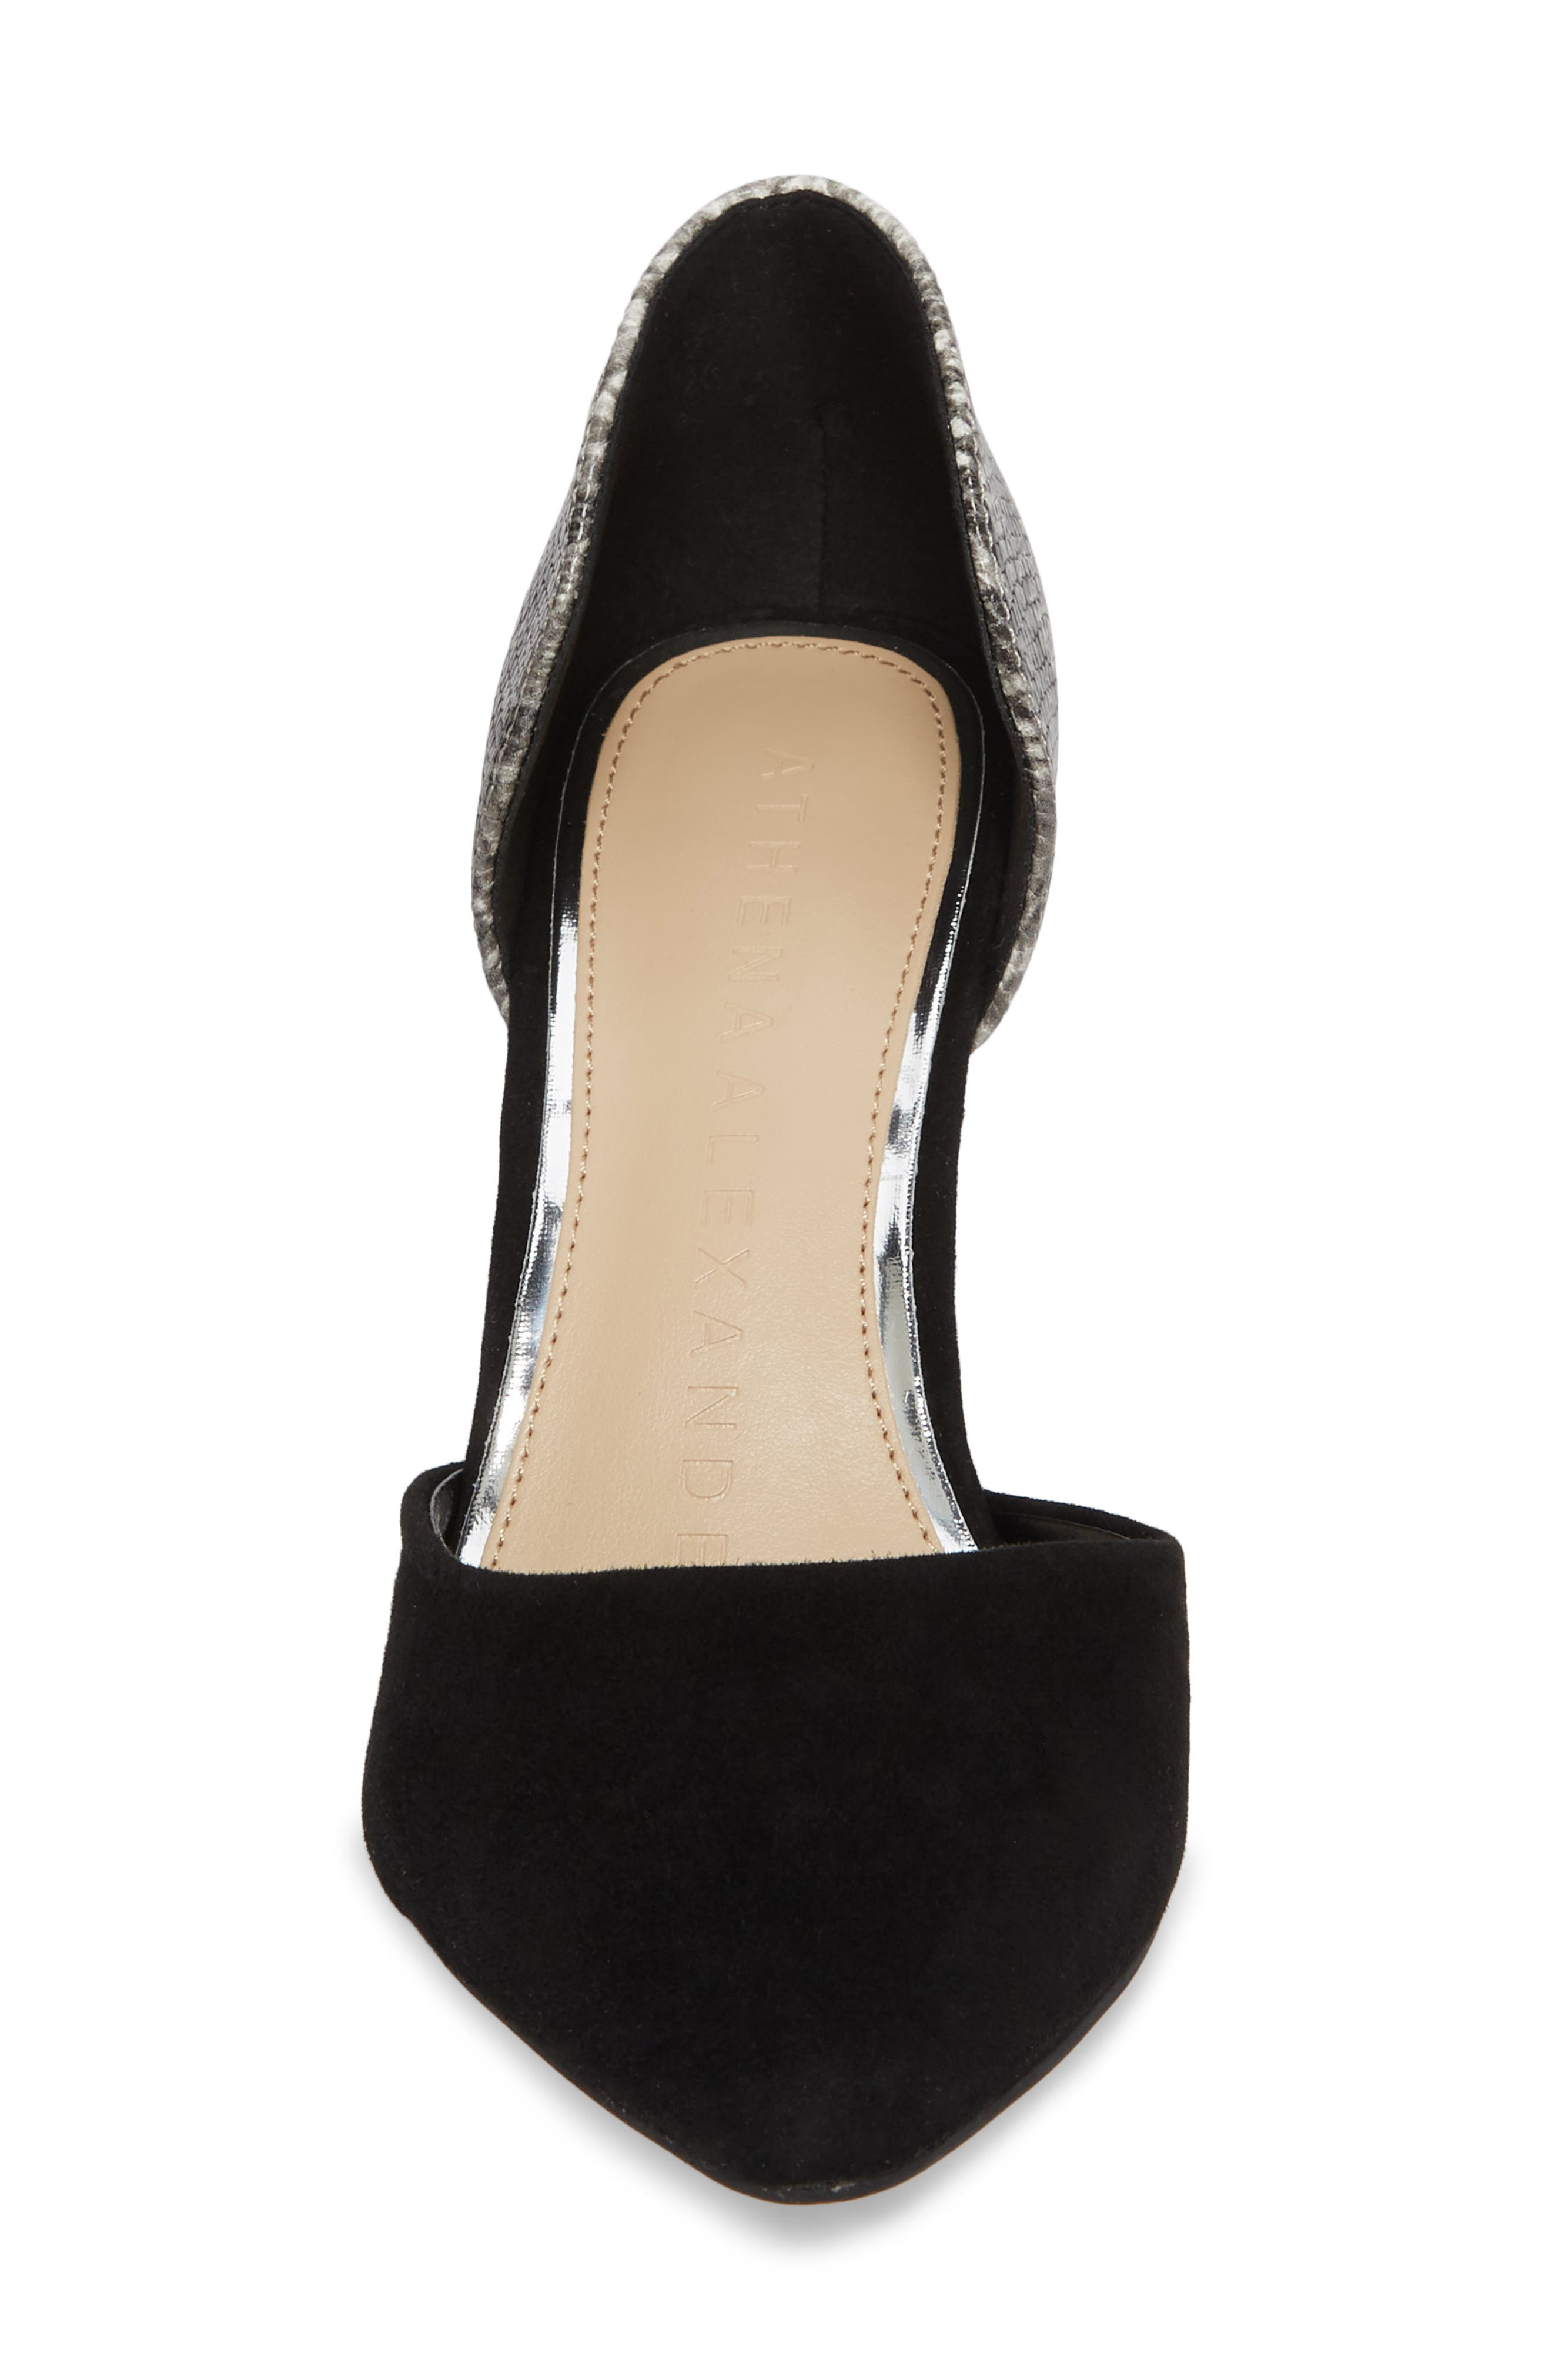 Groton d'Orsay Pump,                             Alternate thumbnail 4, color,                             BLACK SUEDE